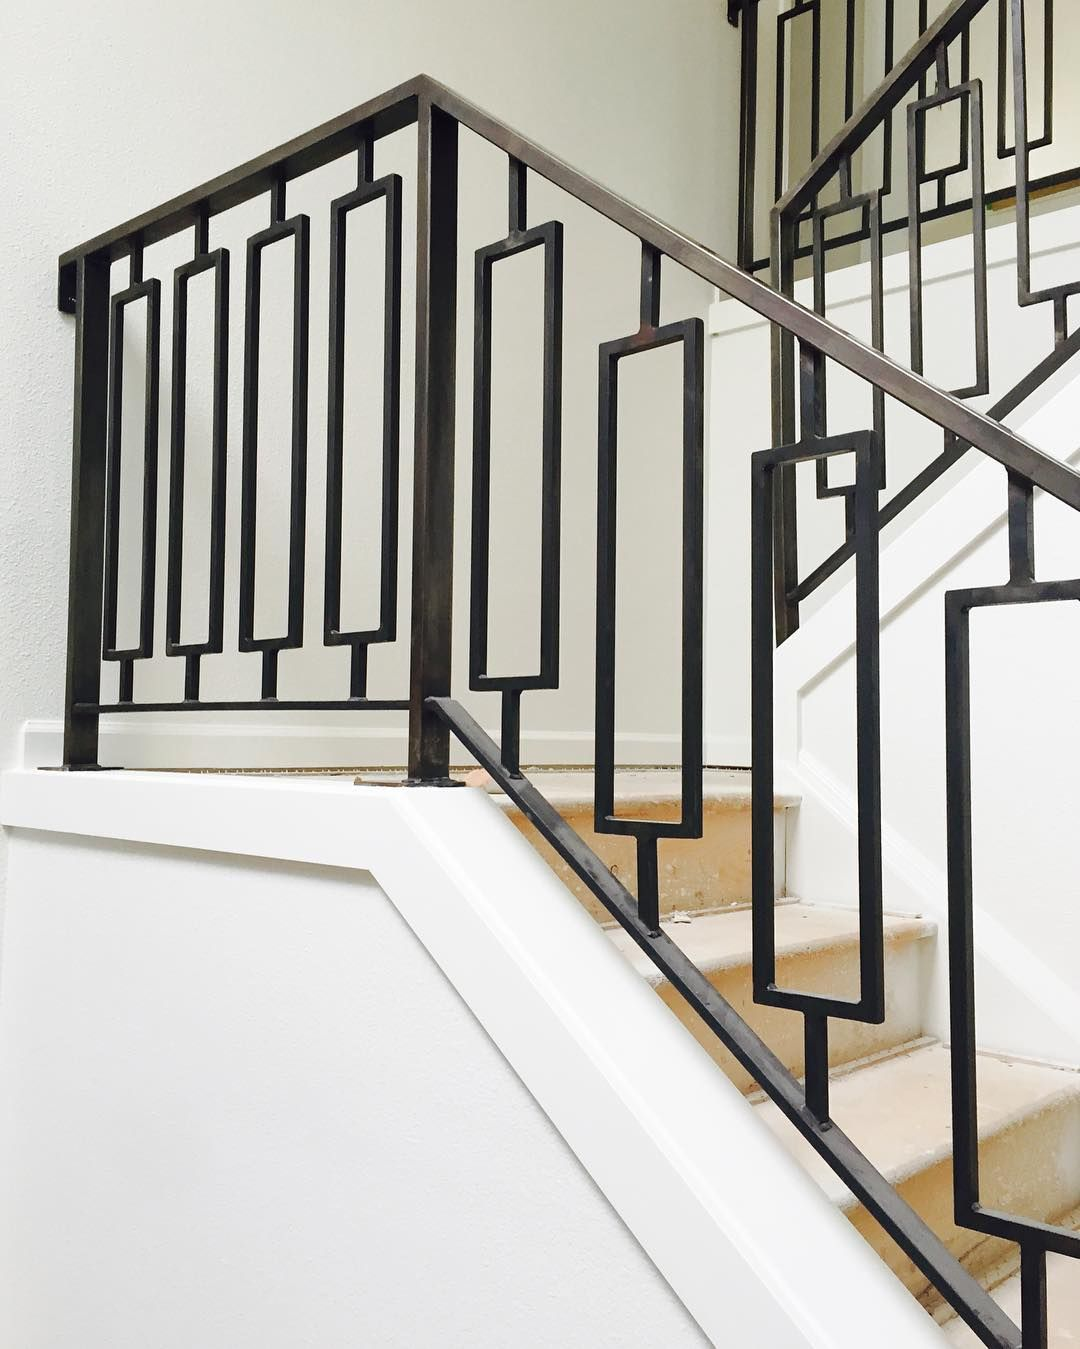 Love These Stairs Staircase Railing Design Modern Stairs | Ladder Railing Design Iron | Balcony | Wrought Iron | Railing Ideas | Metal | Baluster